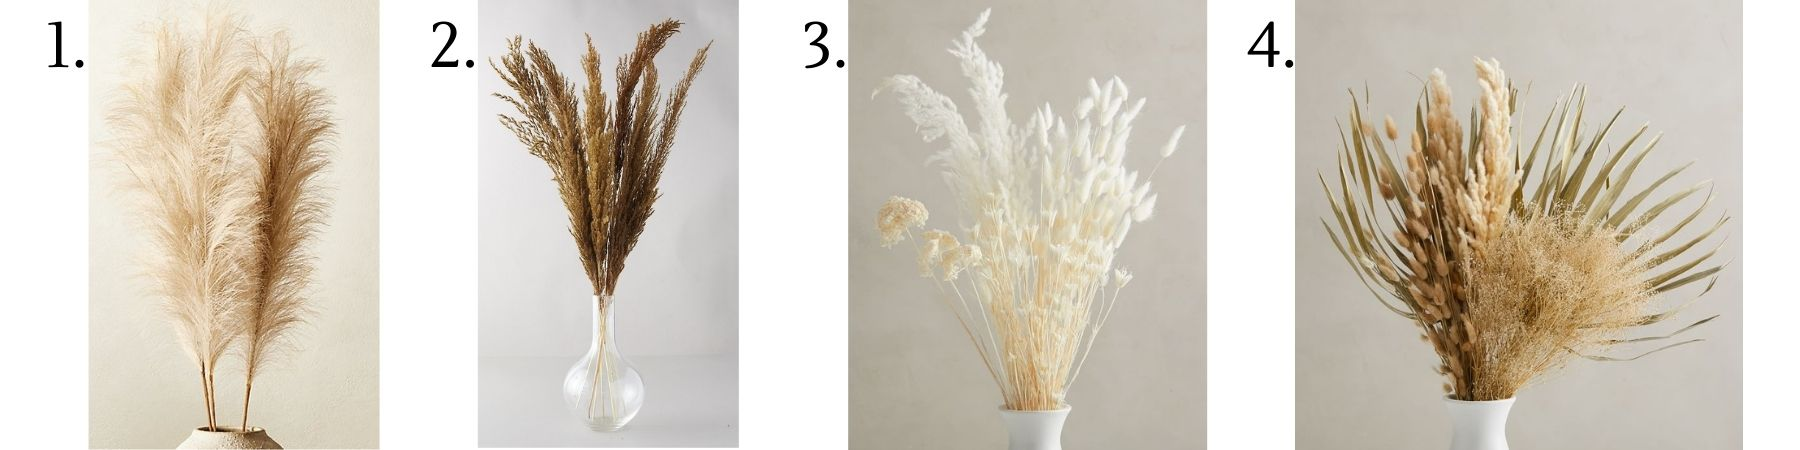 DIY Dry Flower Arrangement: Ideas + Guide 4